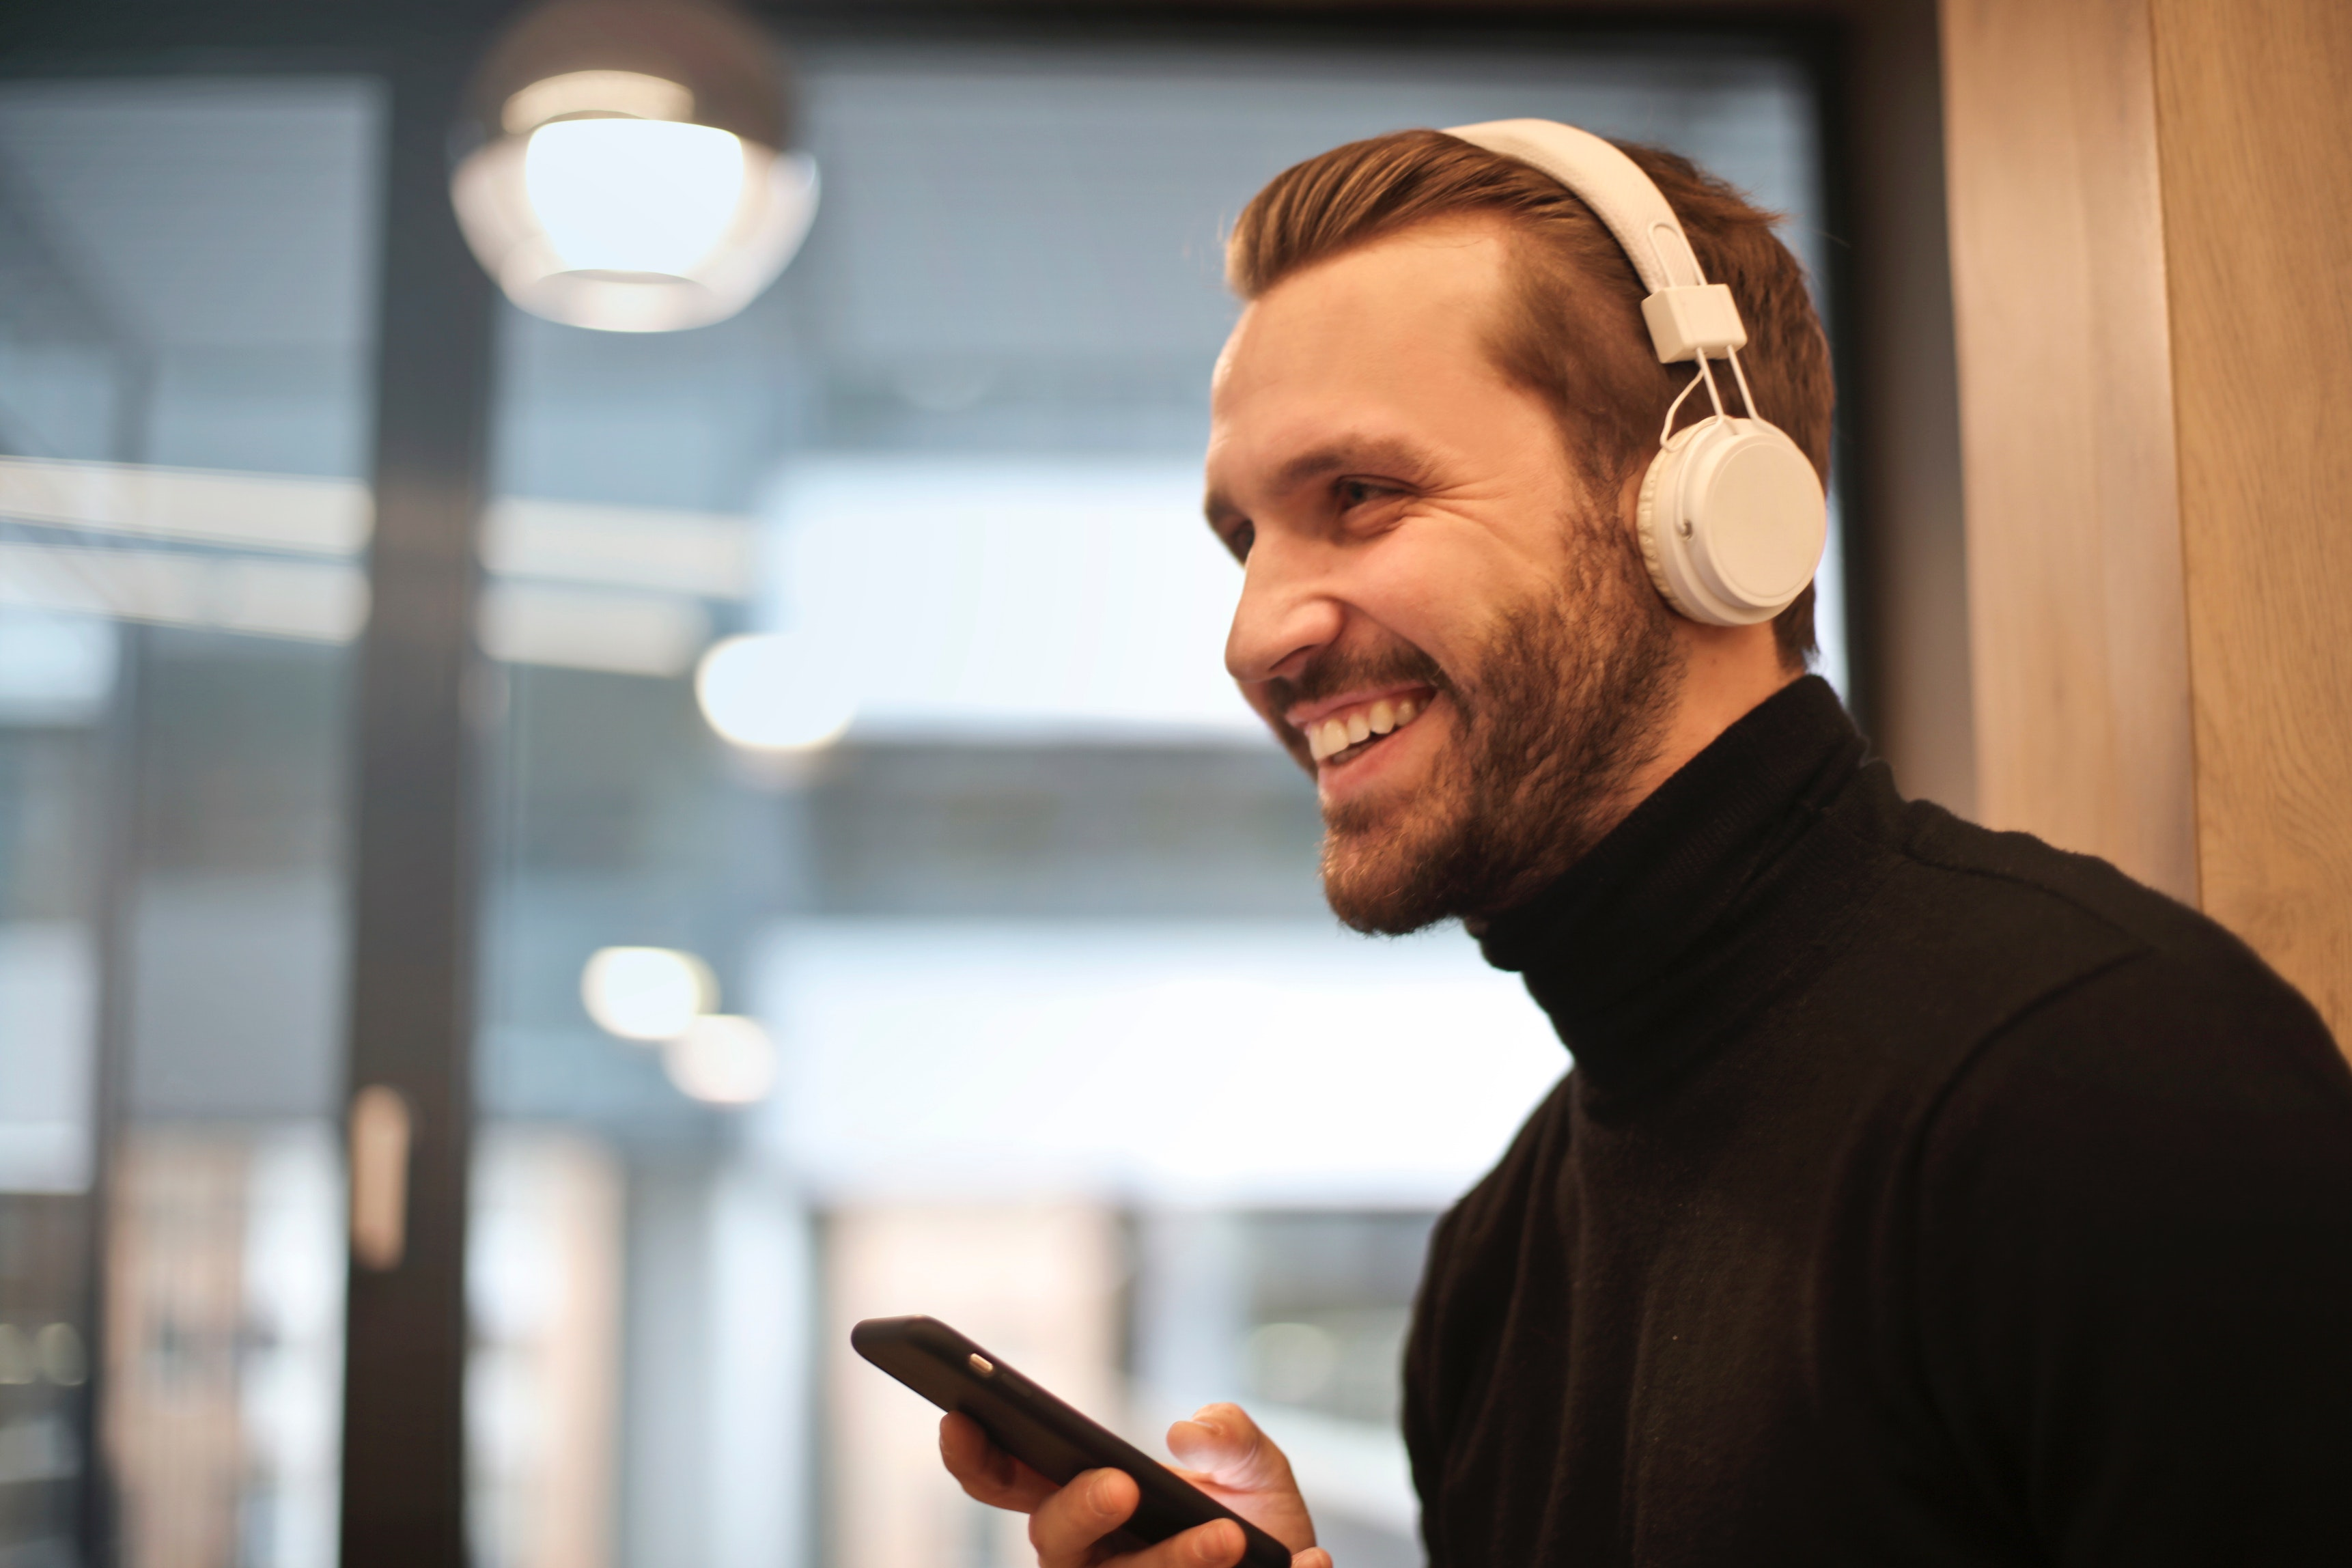 Man Wearing White Headphones Listening to Music, Bokeh, Mobile phone, Window, Touch, HQ Photo